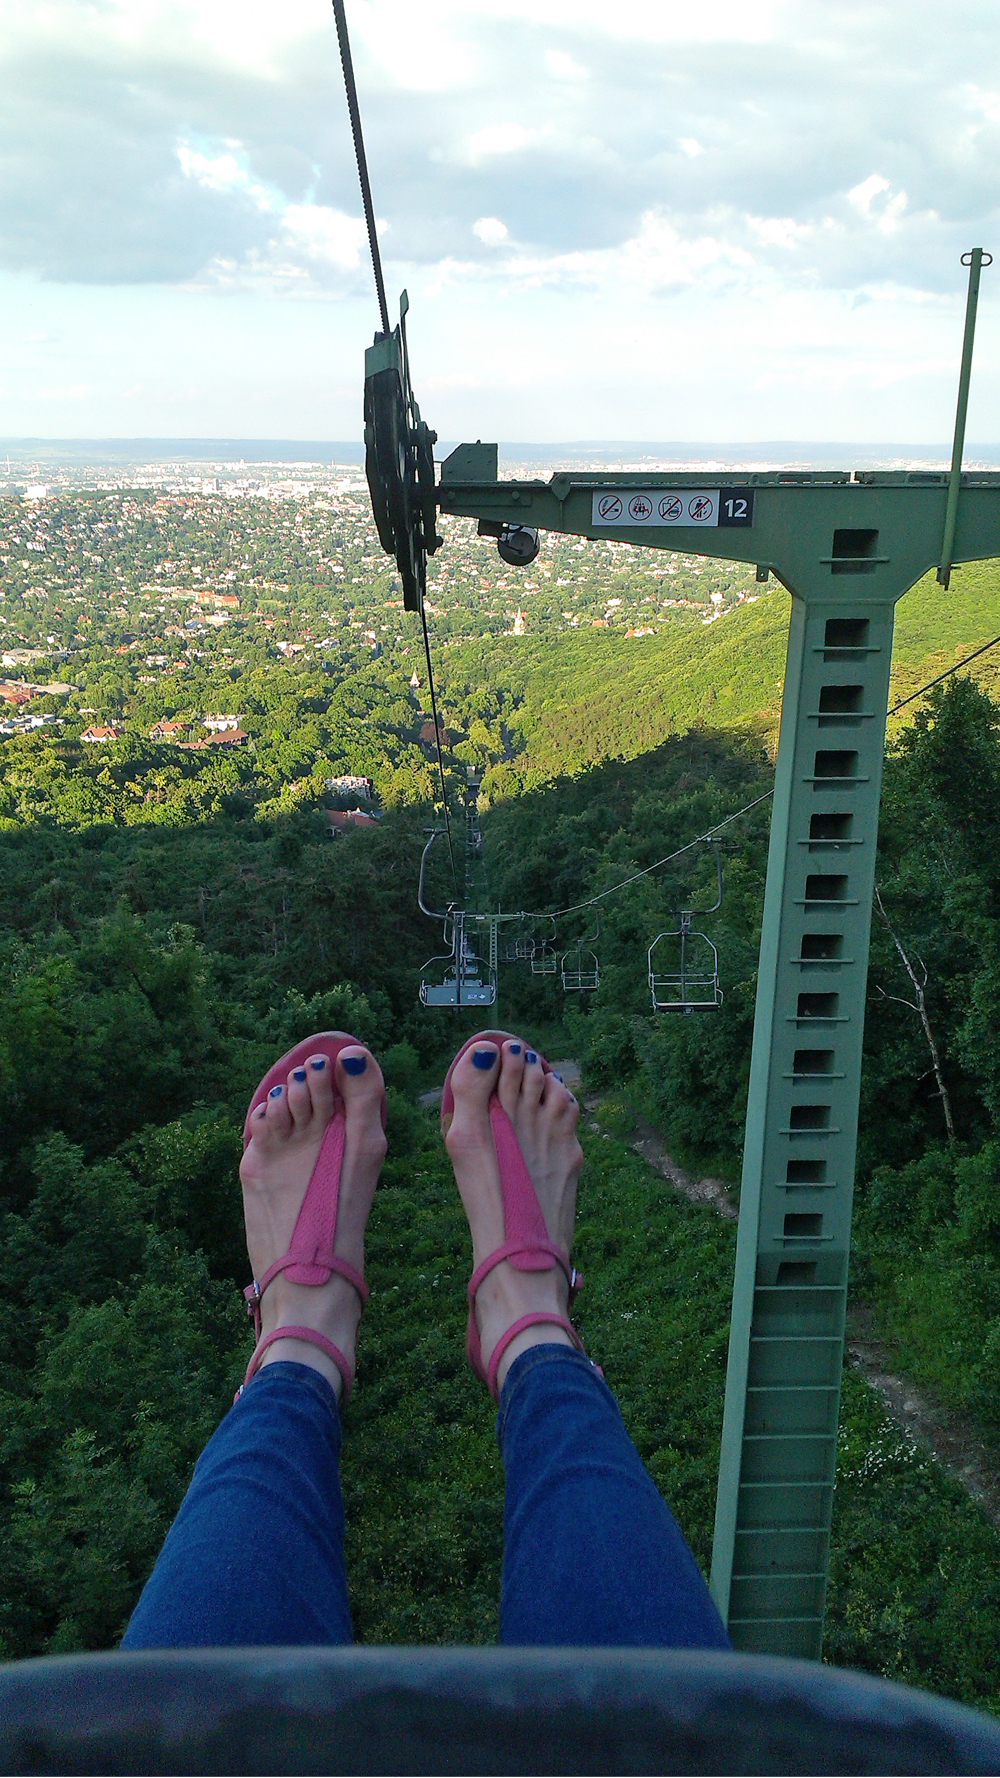 View from the chairlift, János Hill - Top 5 viewpoints in Budapest Hungary, recommended by a local | Aliz's Wonderland